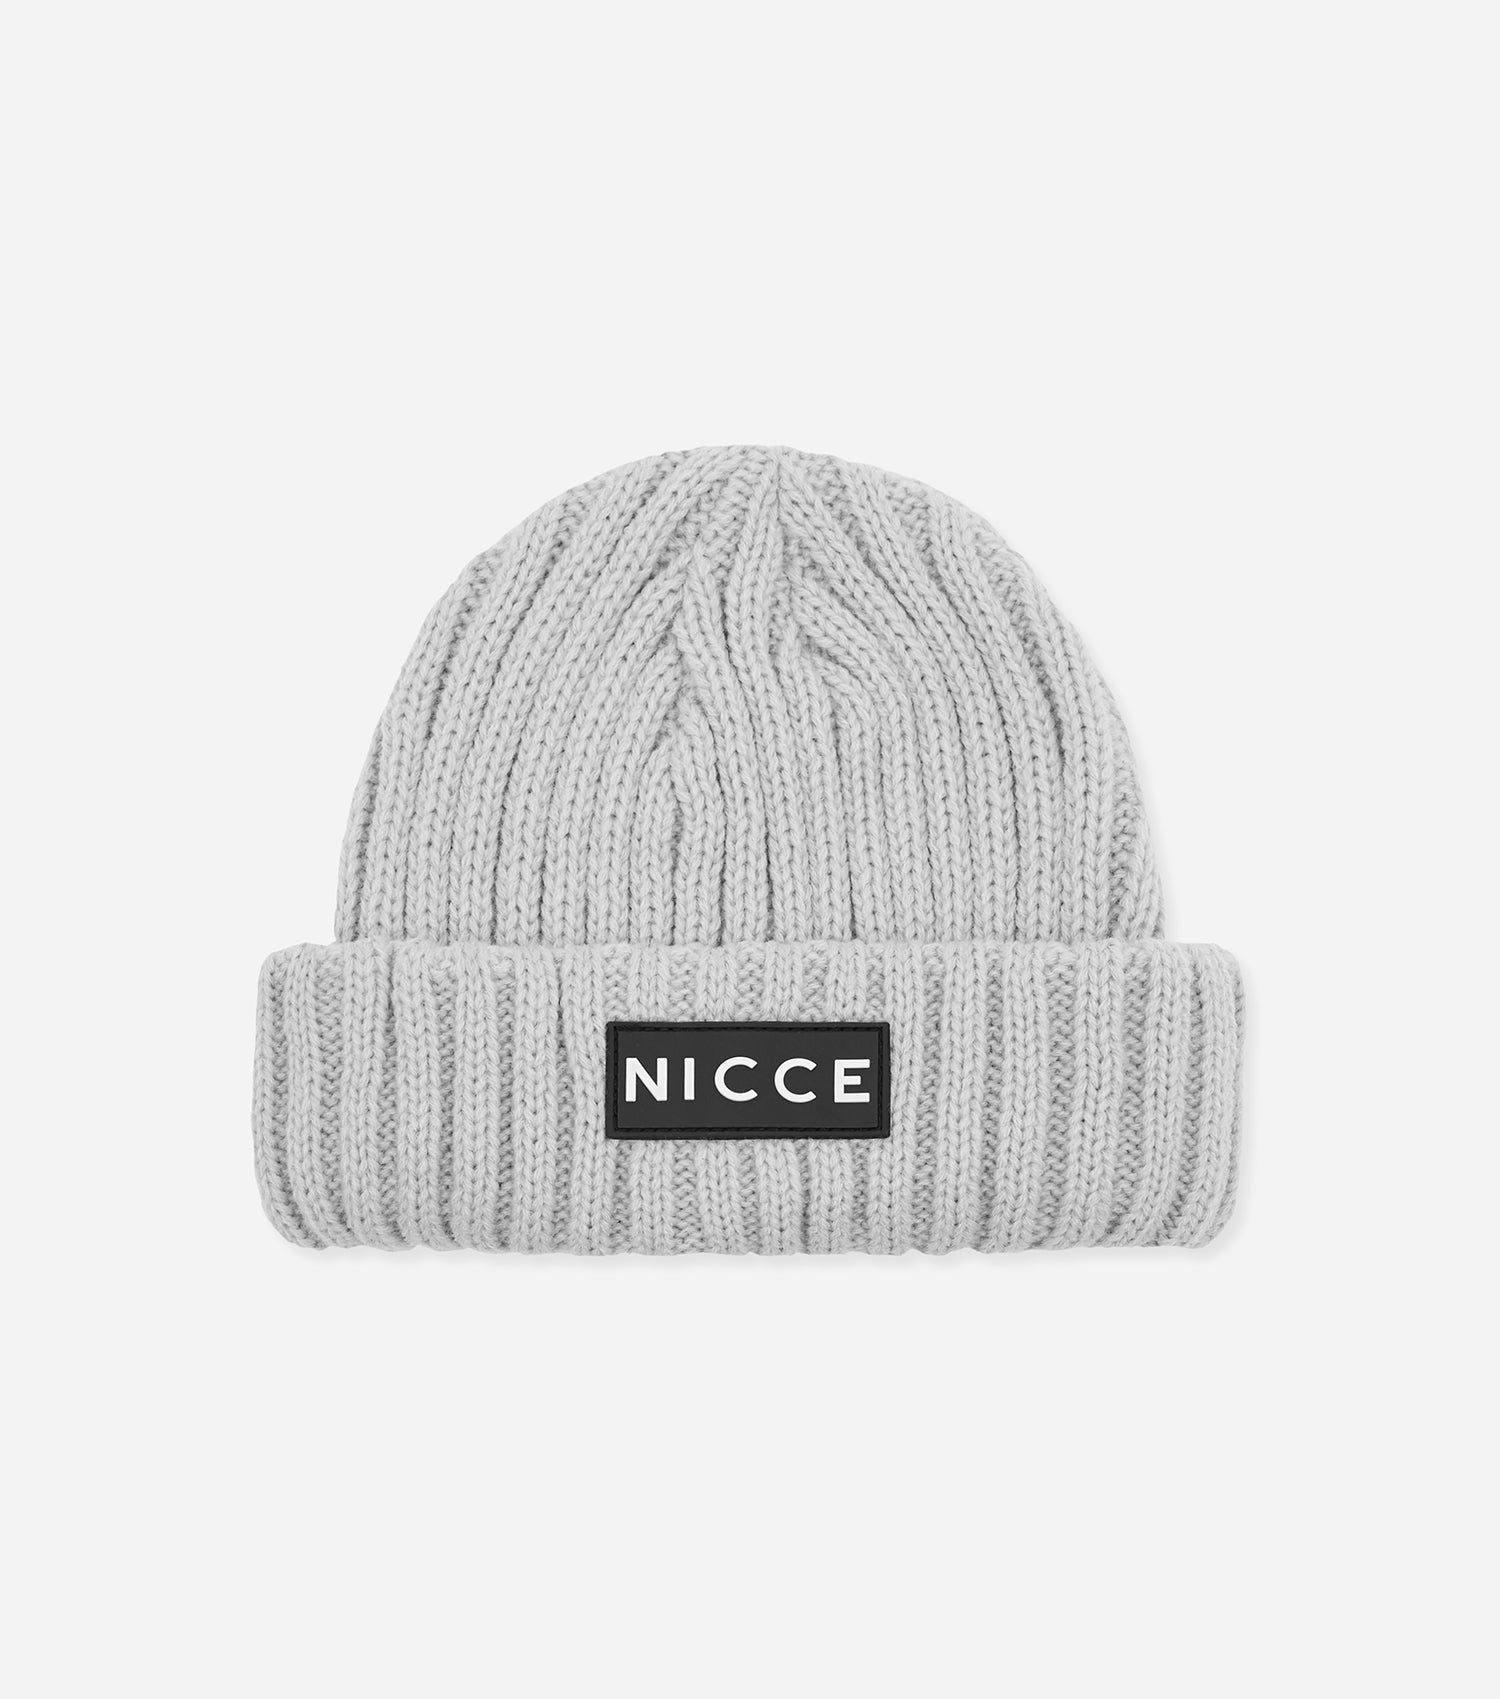 NICCE Arlo Beanie Hat | Grey, Hats